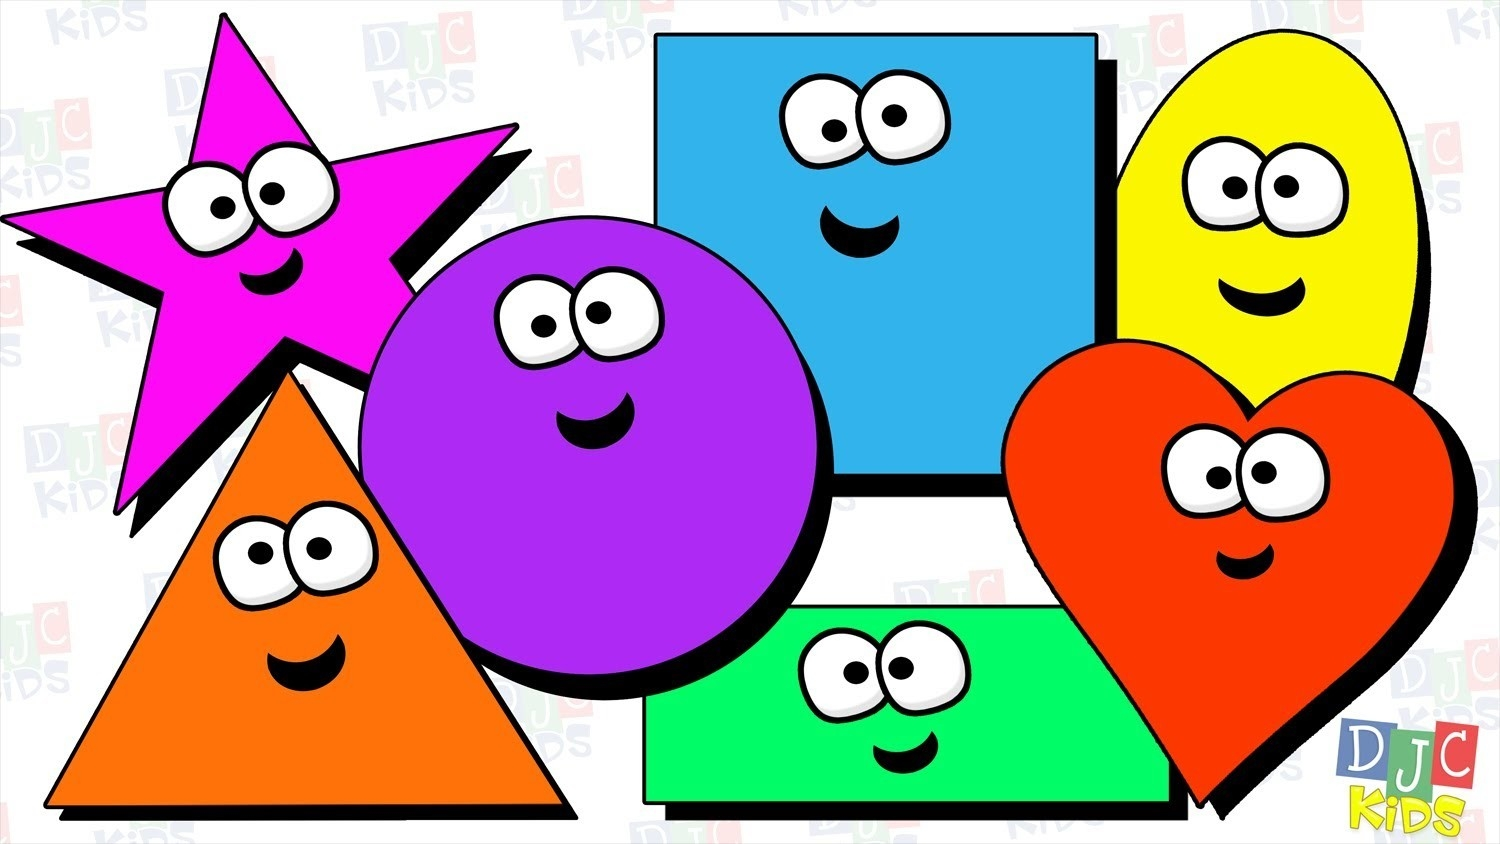 A Fun Simple Childrens Video To Learn Shape Names For Preschool intended for Shapes Names For Kids 25683